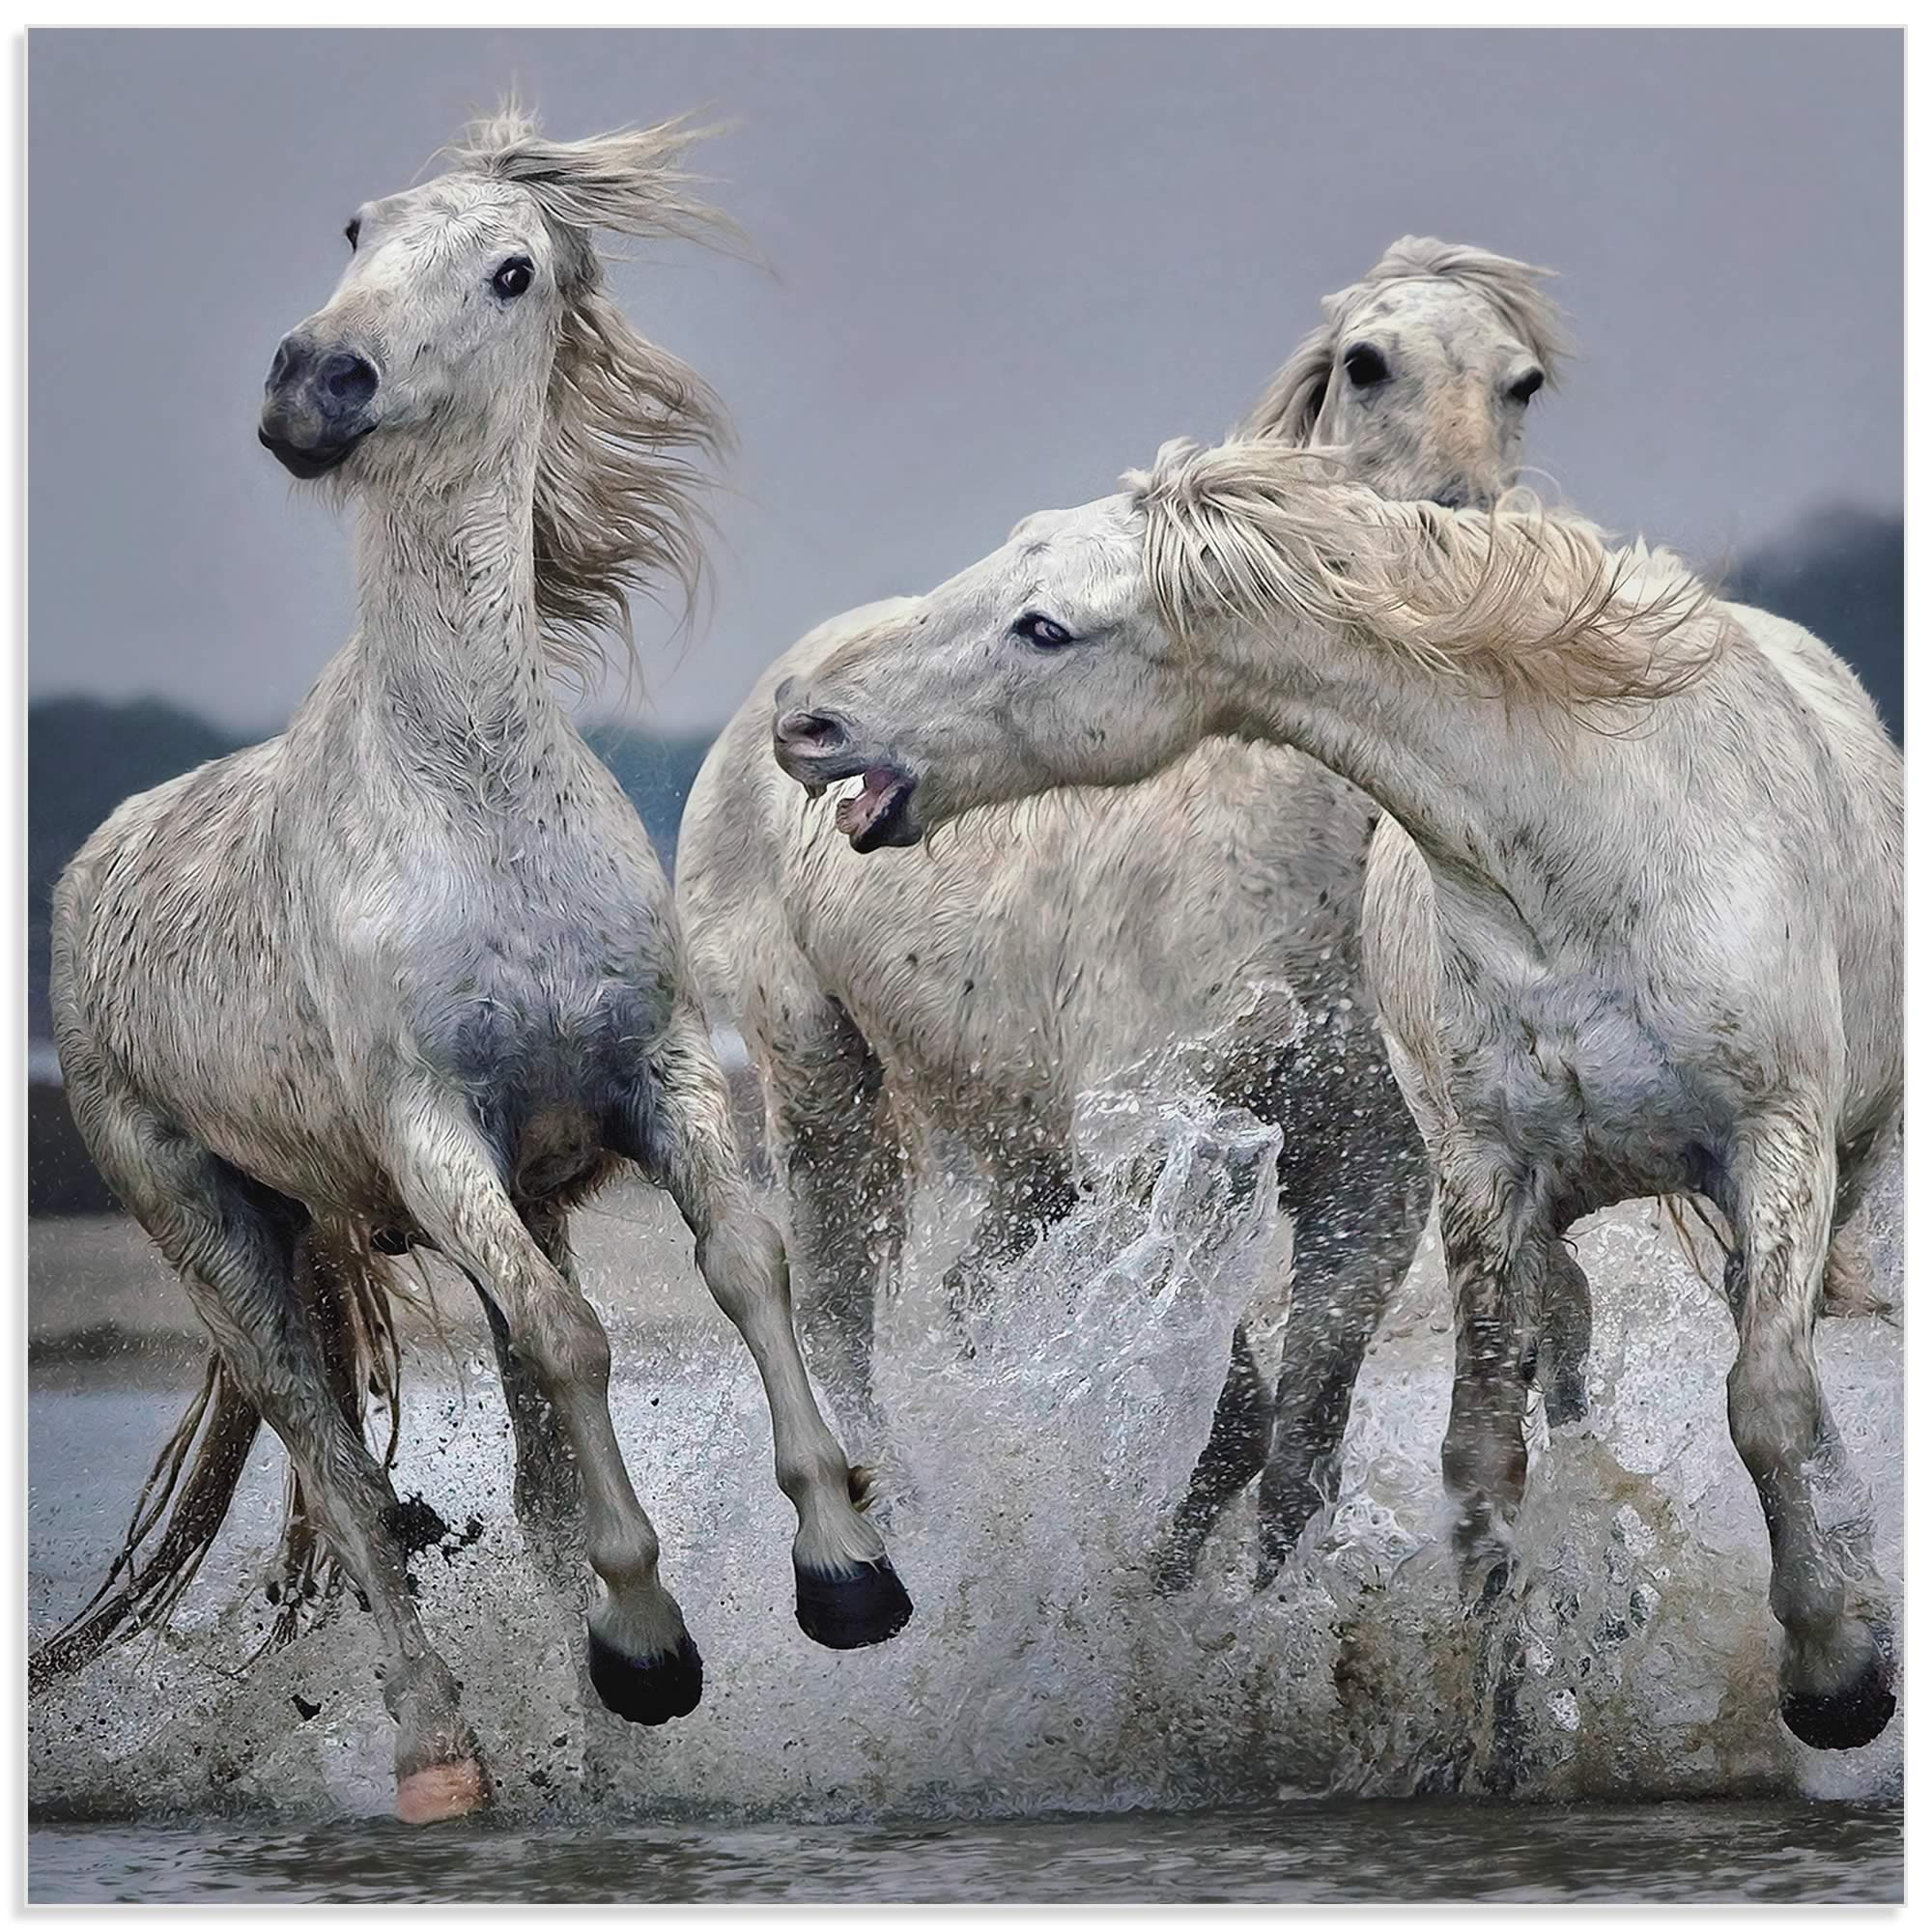 White Horse on Water by Paul Keates - Horse Art on Metal or Acrylic - Alternate View 2